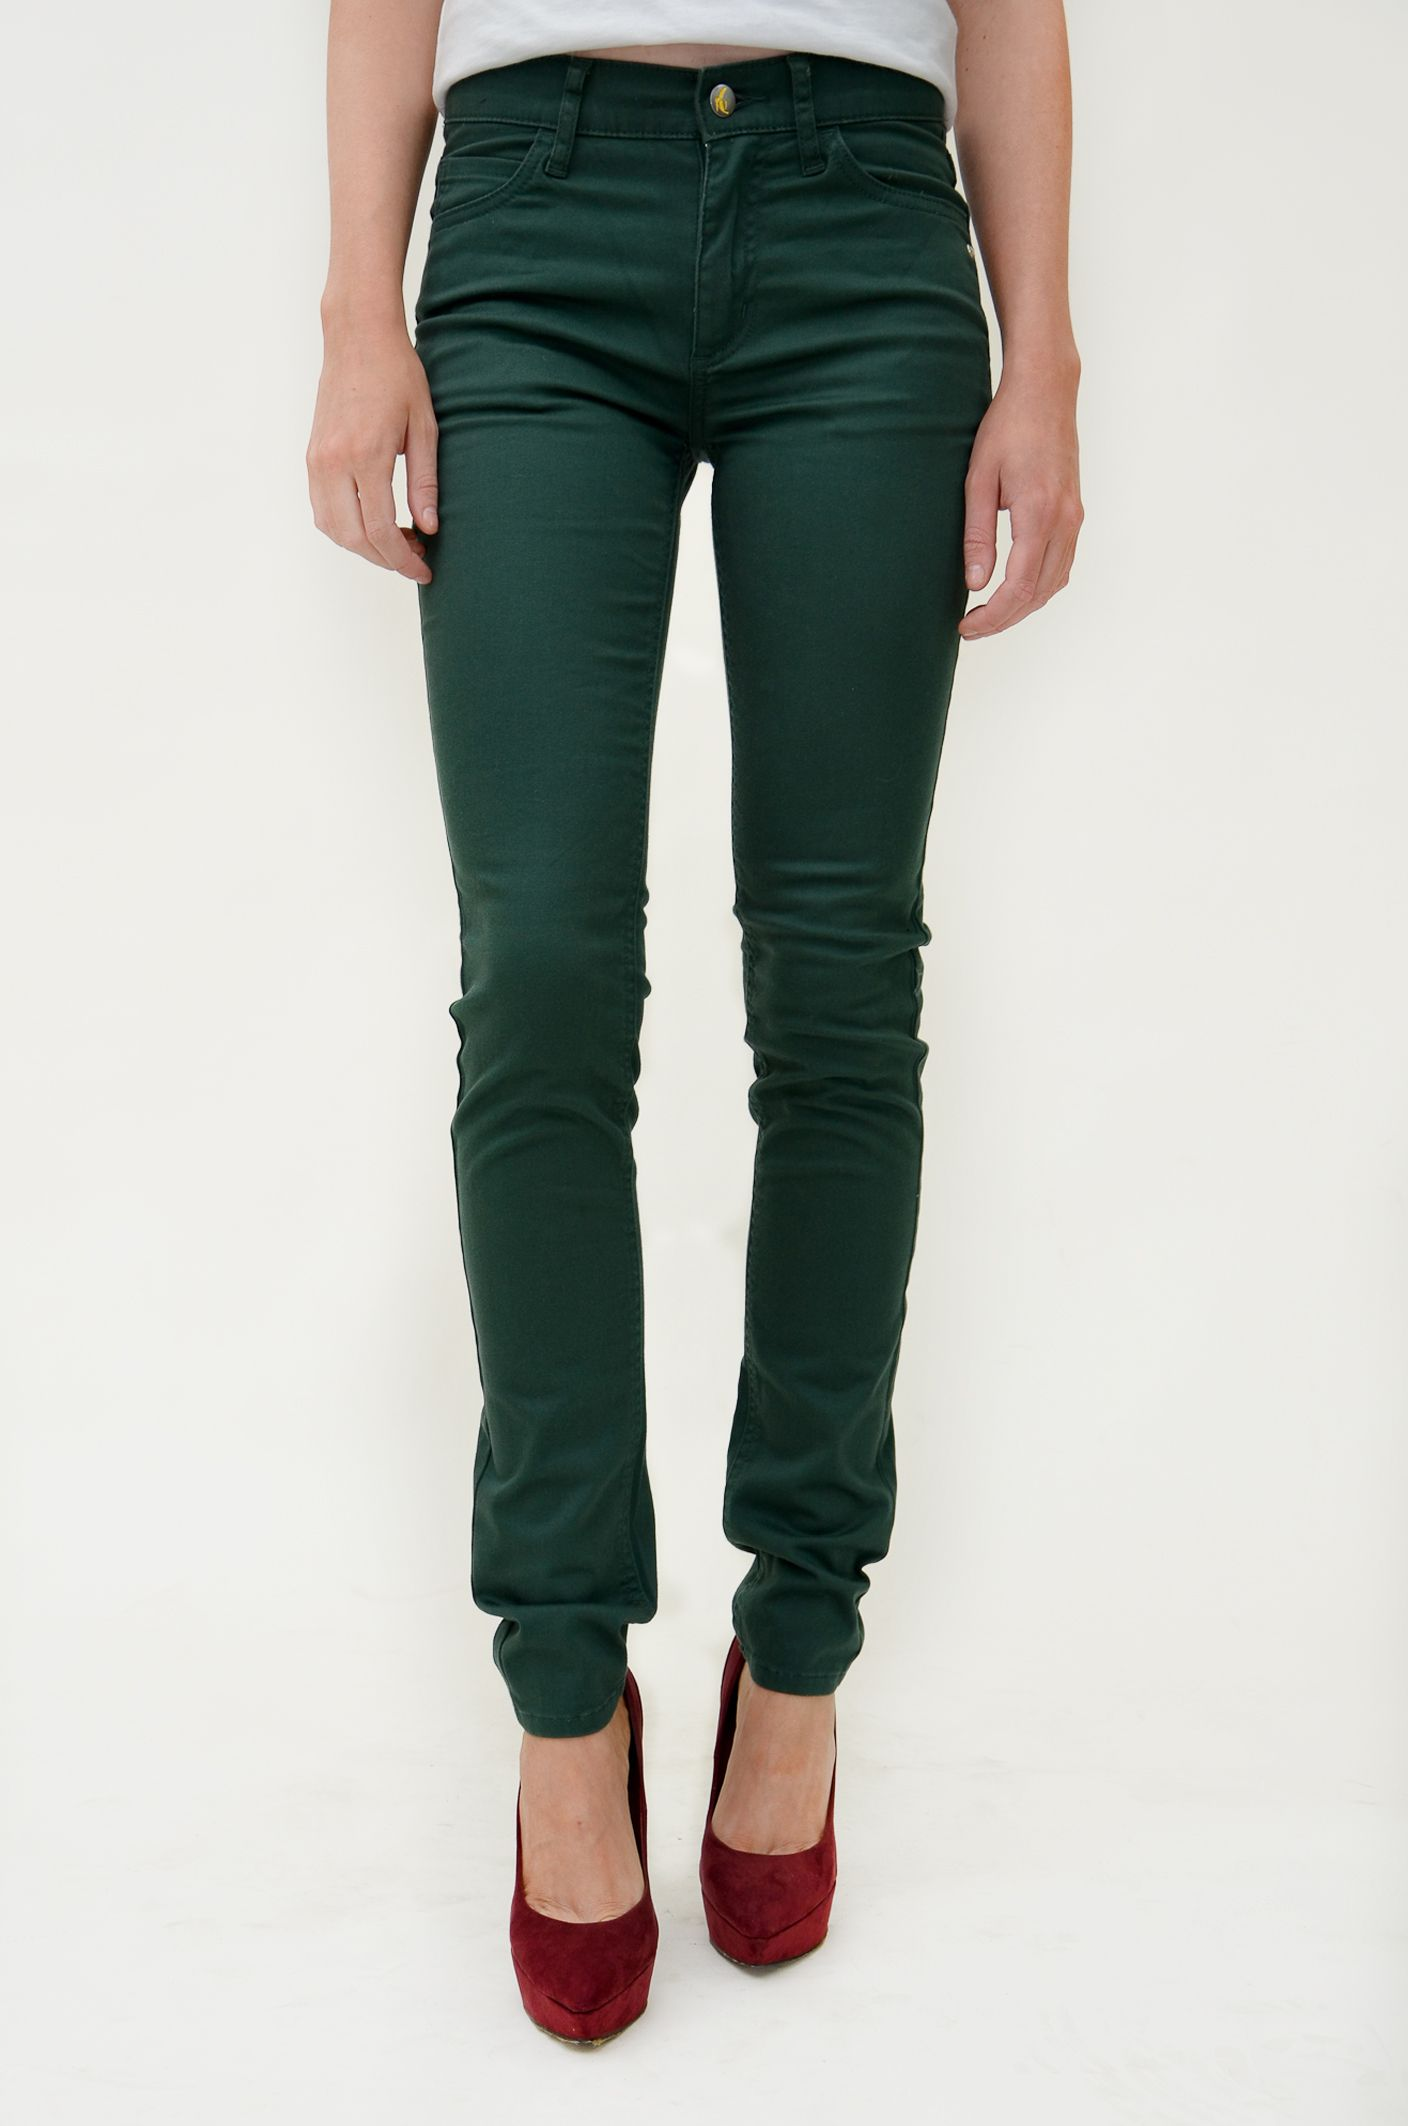 Green skinny jeans made of organic cotton by Monkee Genes. 79€ at ...